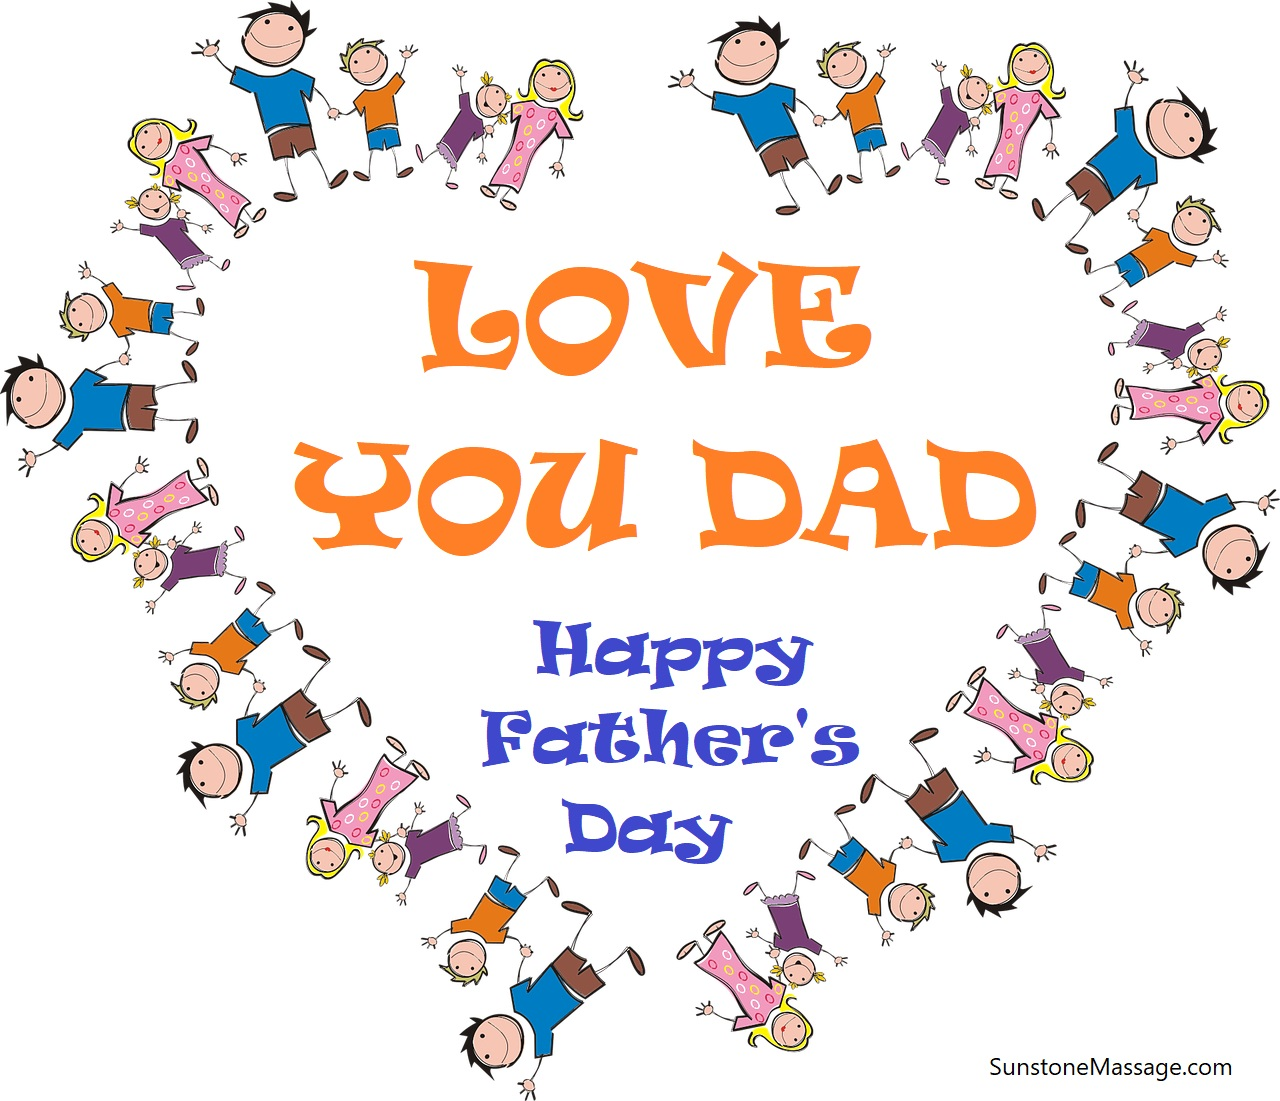 LOVE YOU DAD Happy Father's Day Vaughan Ontario Massage RMT Registered